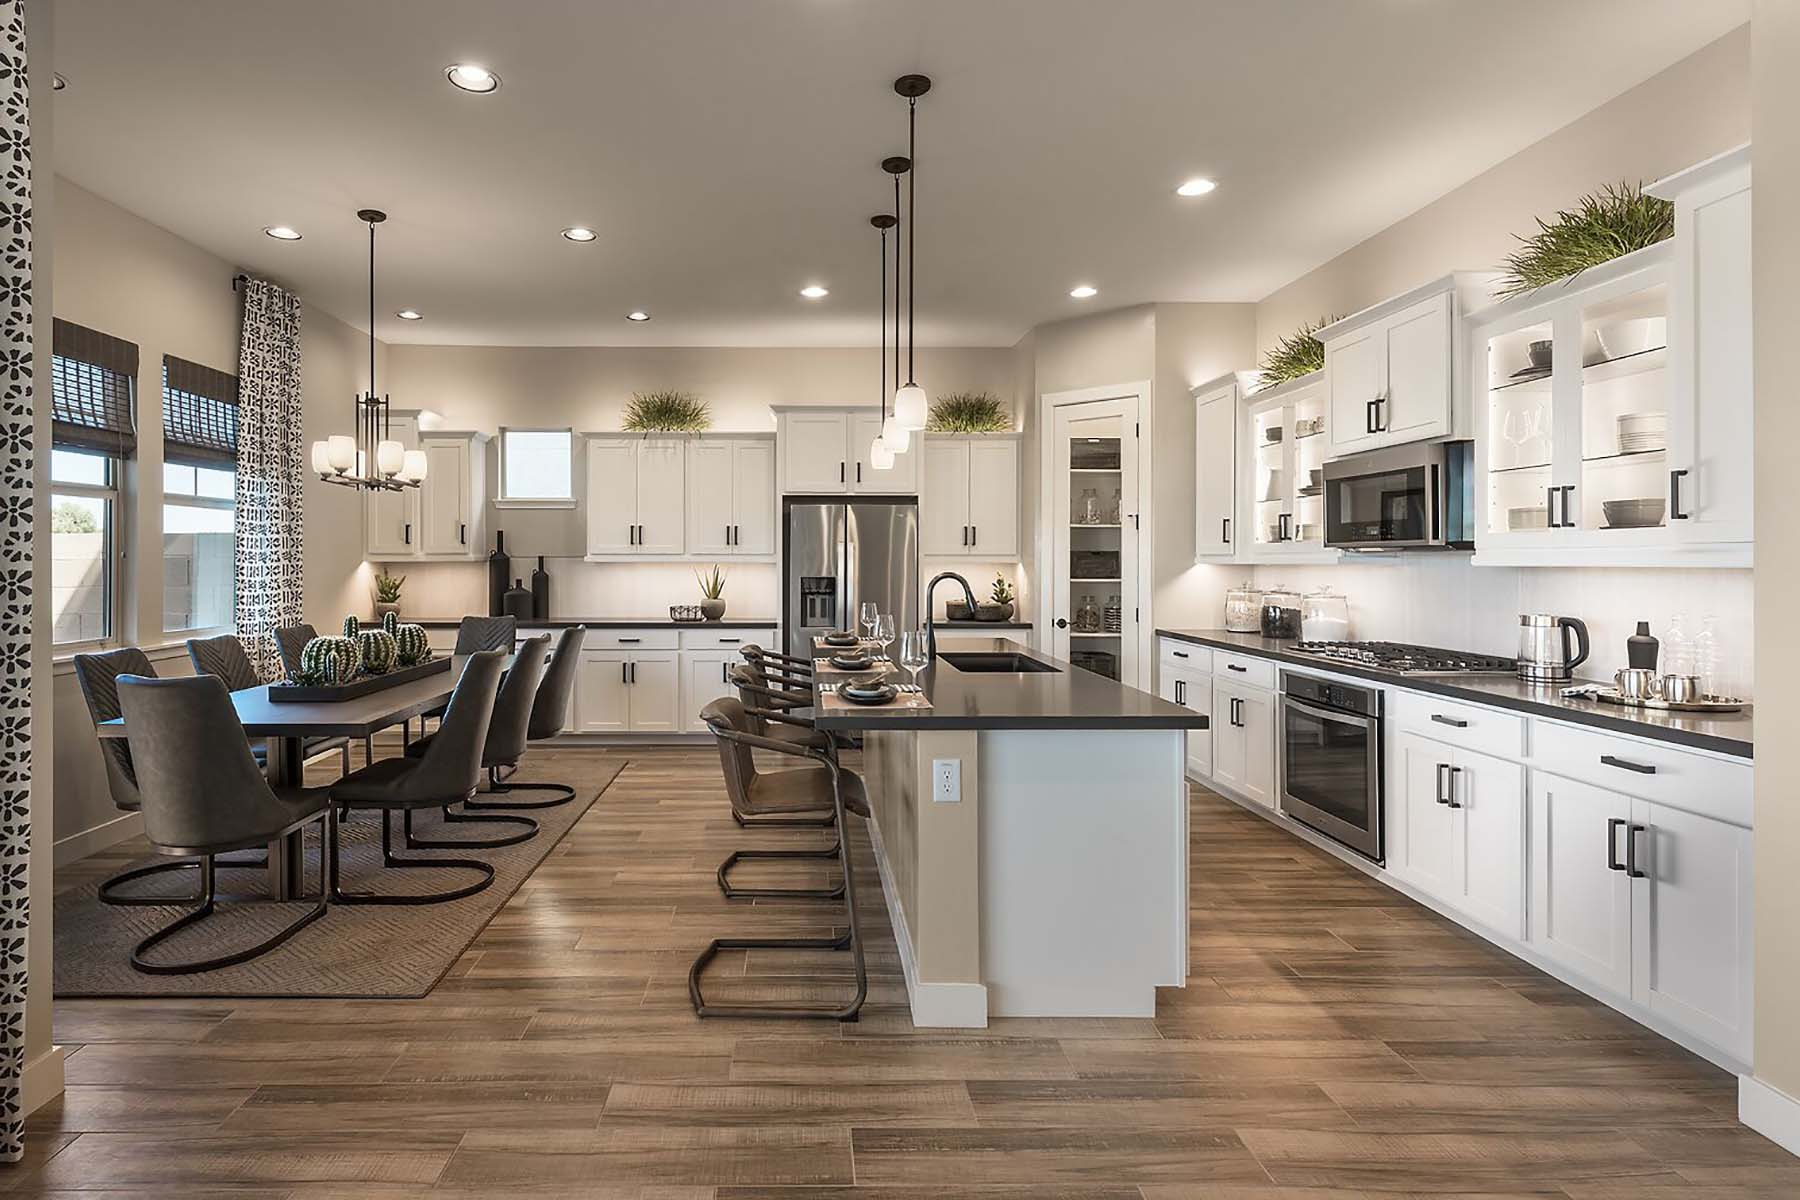 Campbell Plan  at Retreats at Haven in Chandler Arizona by Mattamy Homes